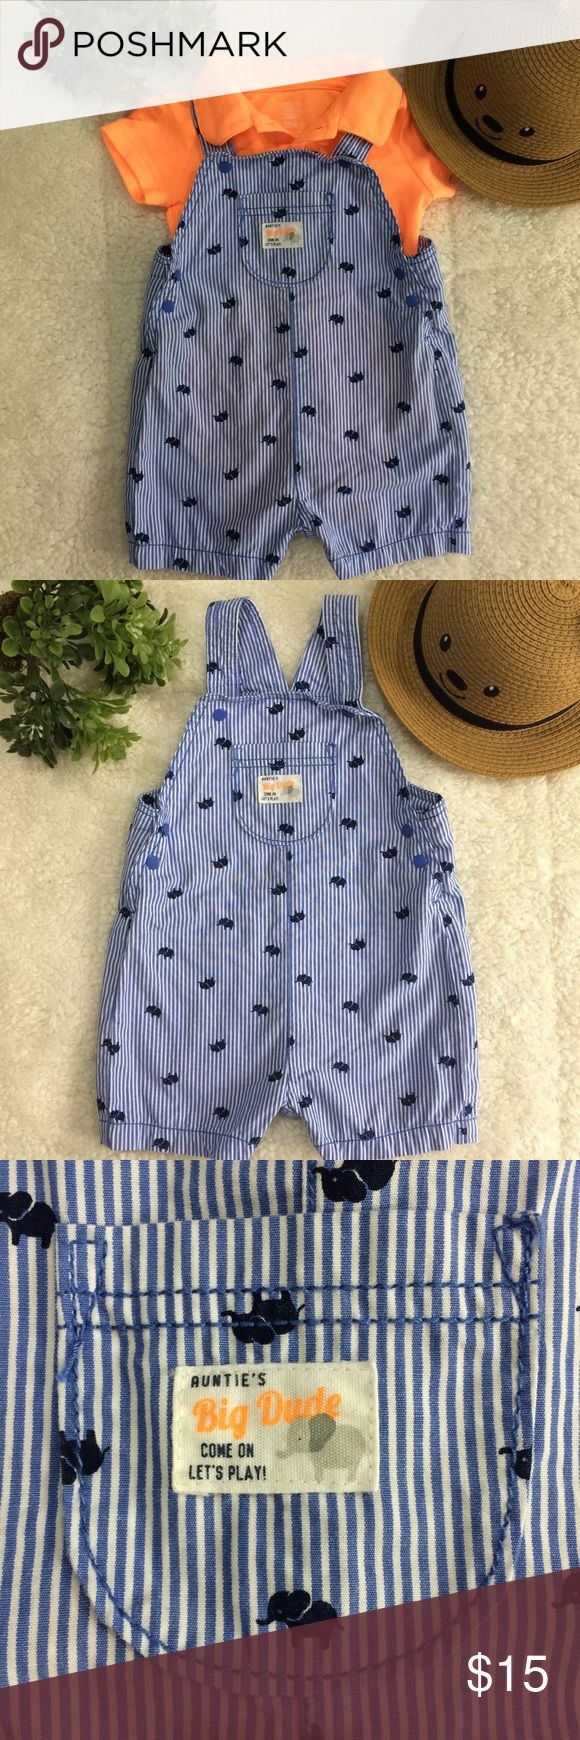 "💙 Cute Baby 👶🏻 Romper 💙 Overalls have thin blue & white stripes with adorable little elephants 🐘 throughout. Pocket in front reads ""Auntie's Big Dude...Come on let's play"". Onesie is bright orange with a collar. Fabric is very soft. Gently worn once. MAKE AN OFFER!!! NO TRADES PLEASE!!! Carter's Matching Sets"